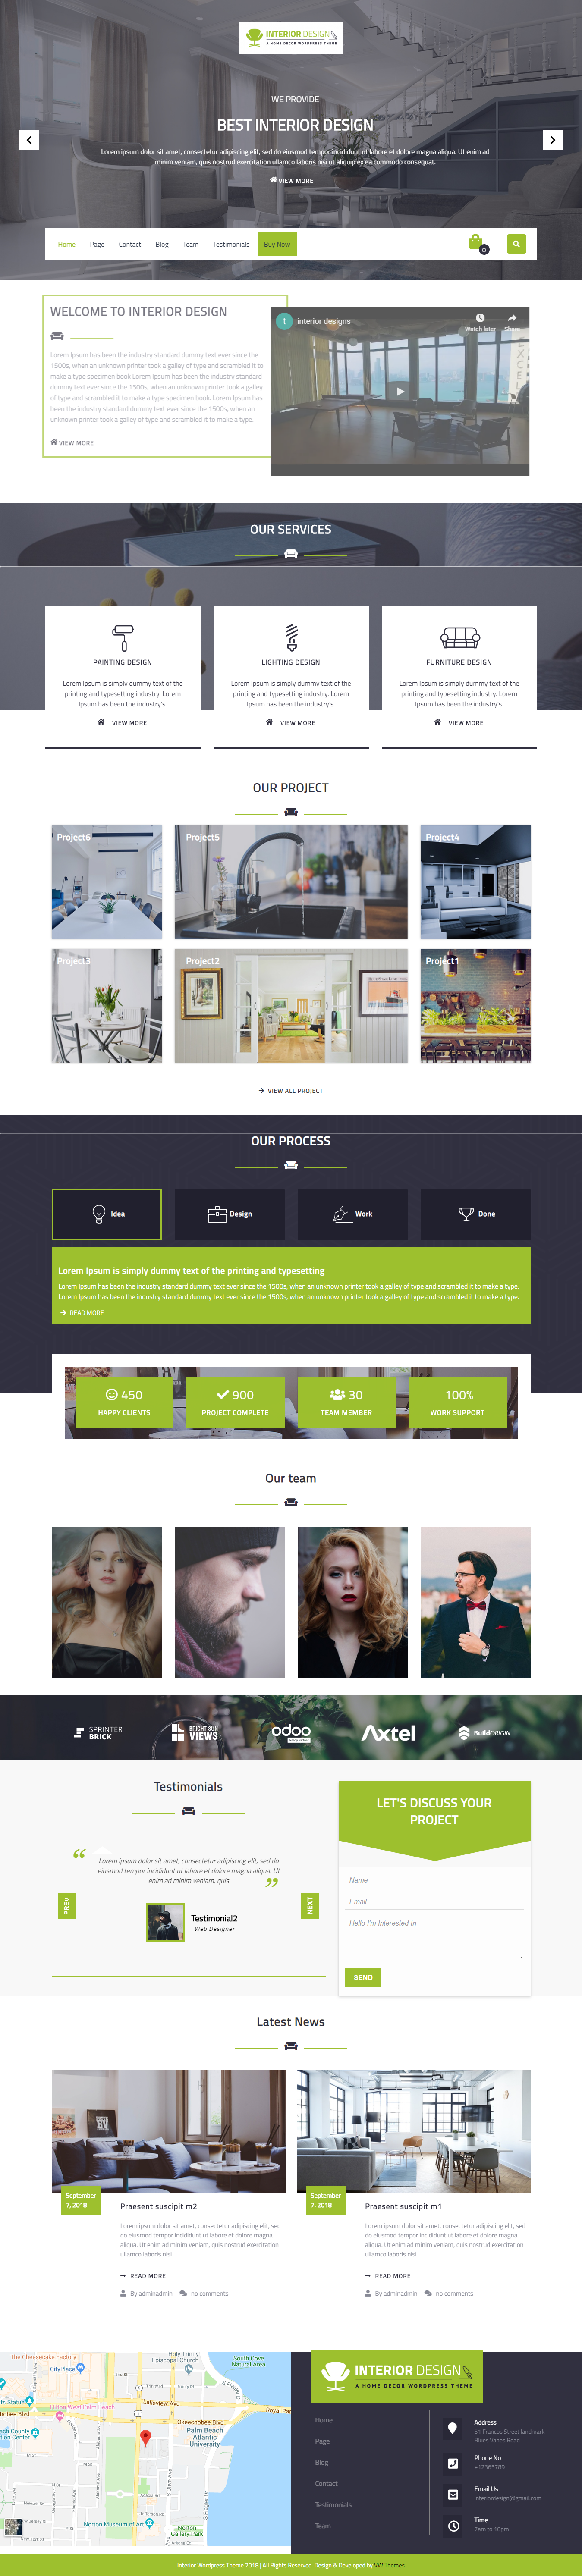 VW Interior Designs - Best Free Interior Design WordPress Theme